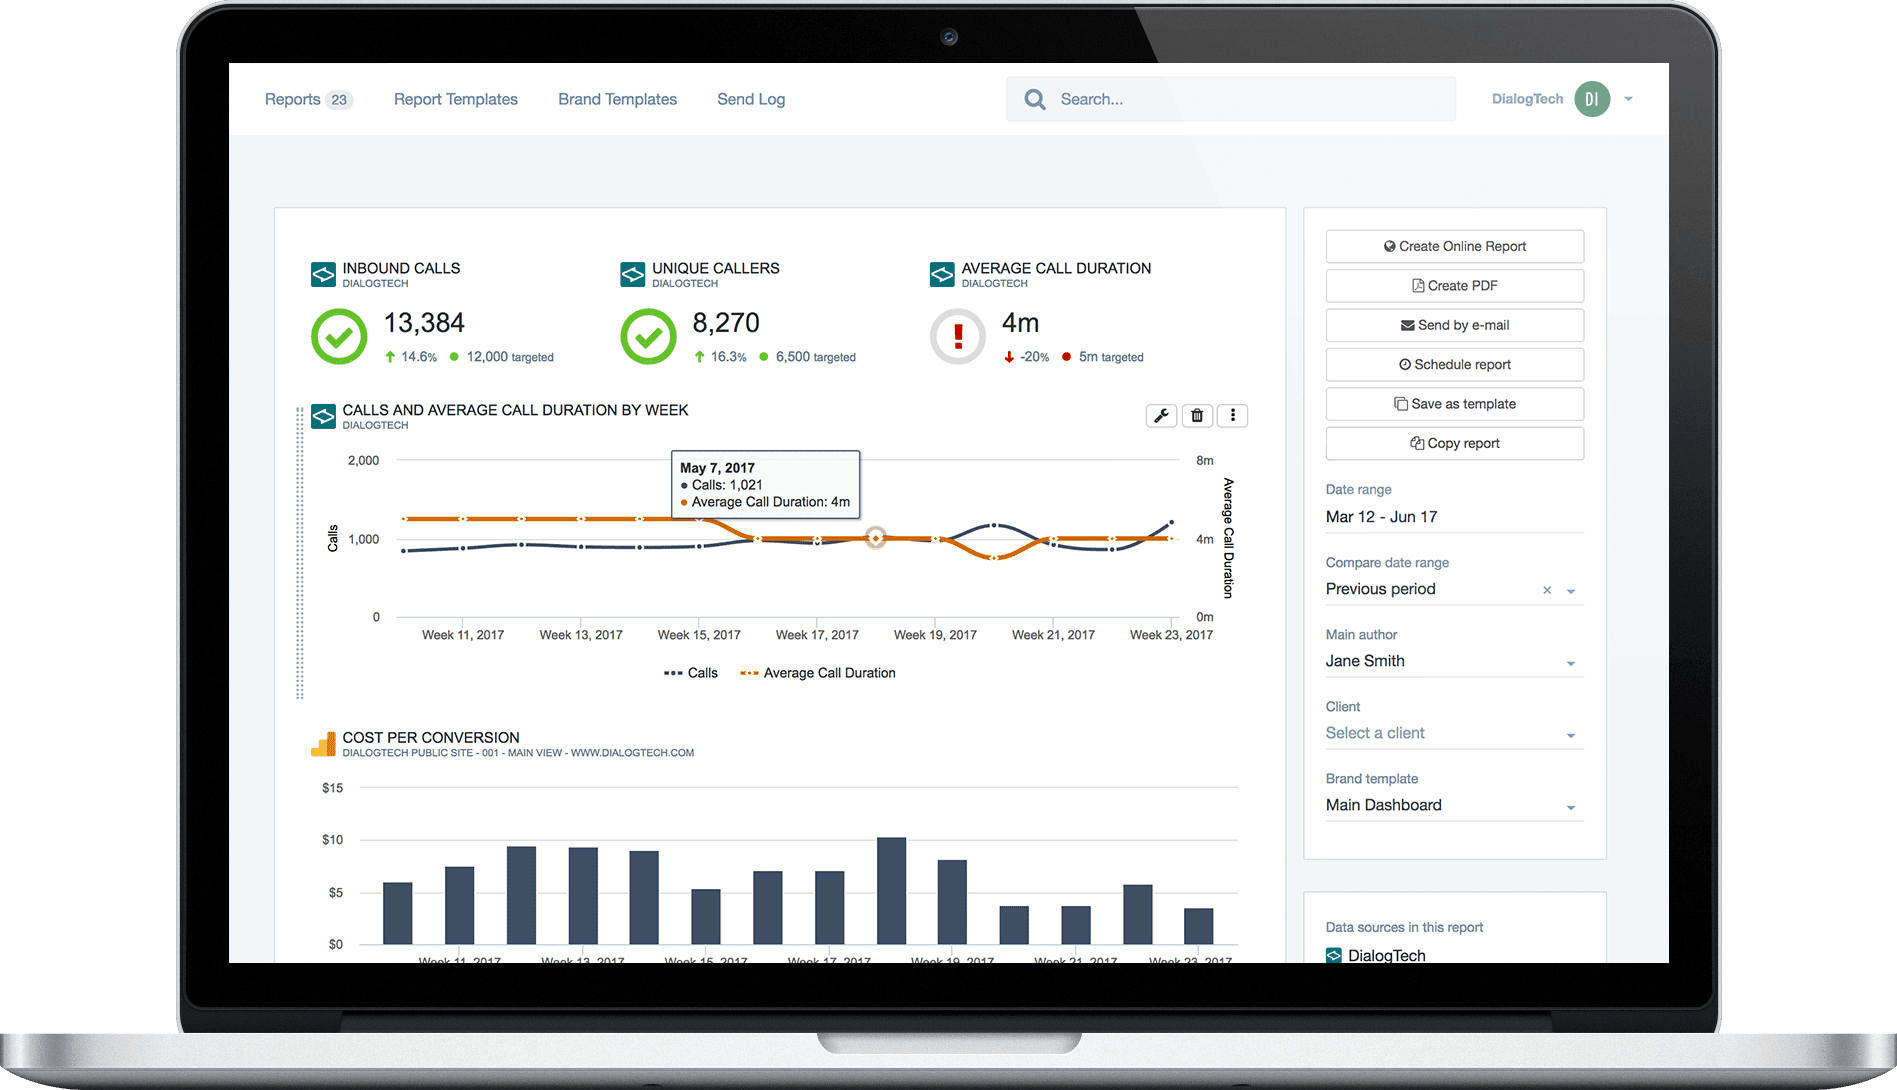 DialogTech's call tracking platform includes a customizable dashboard to provide you with actionable insights